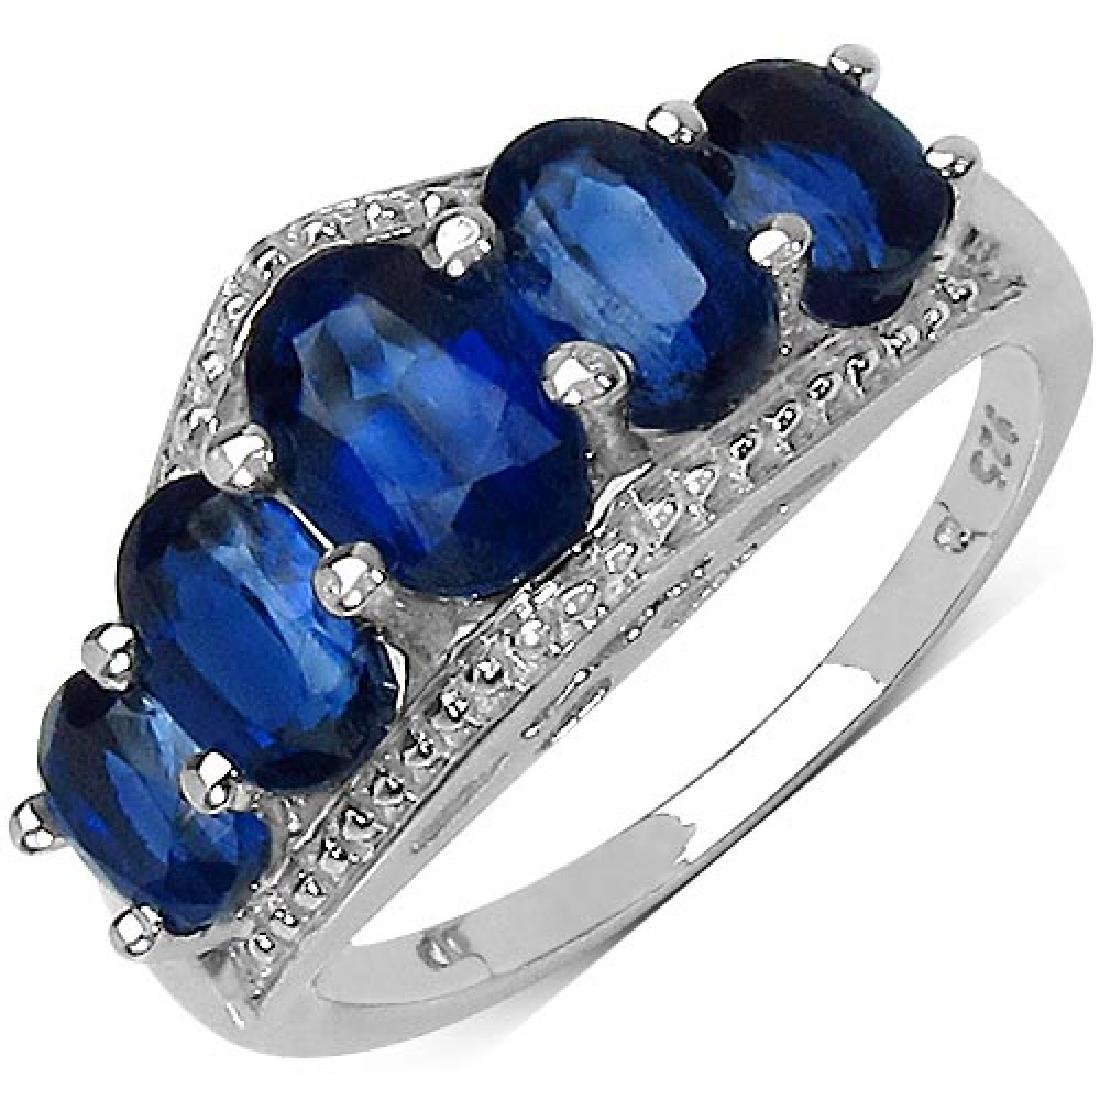 3.04 Carat Genuine Kyanite .925 Sterling Silver Ring